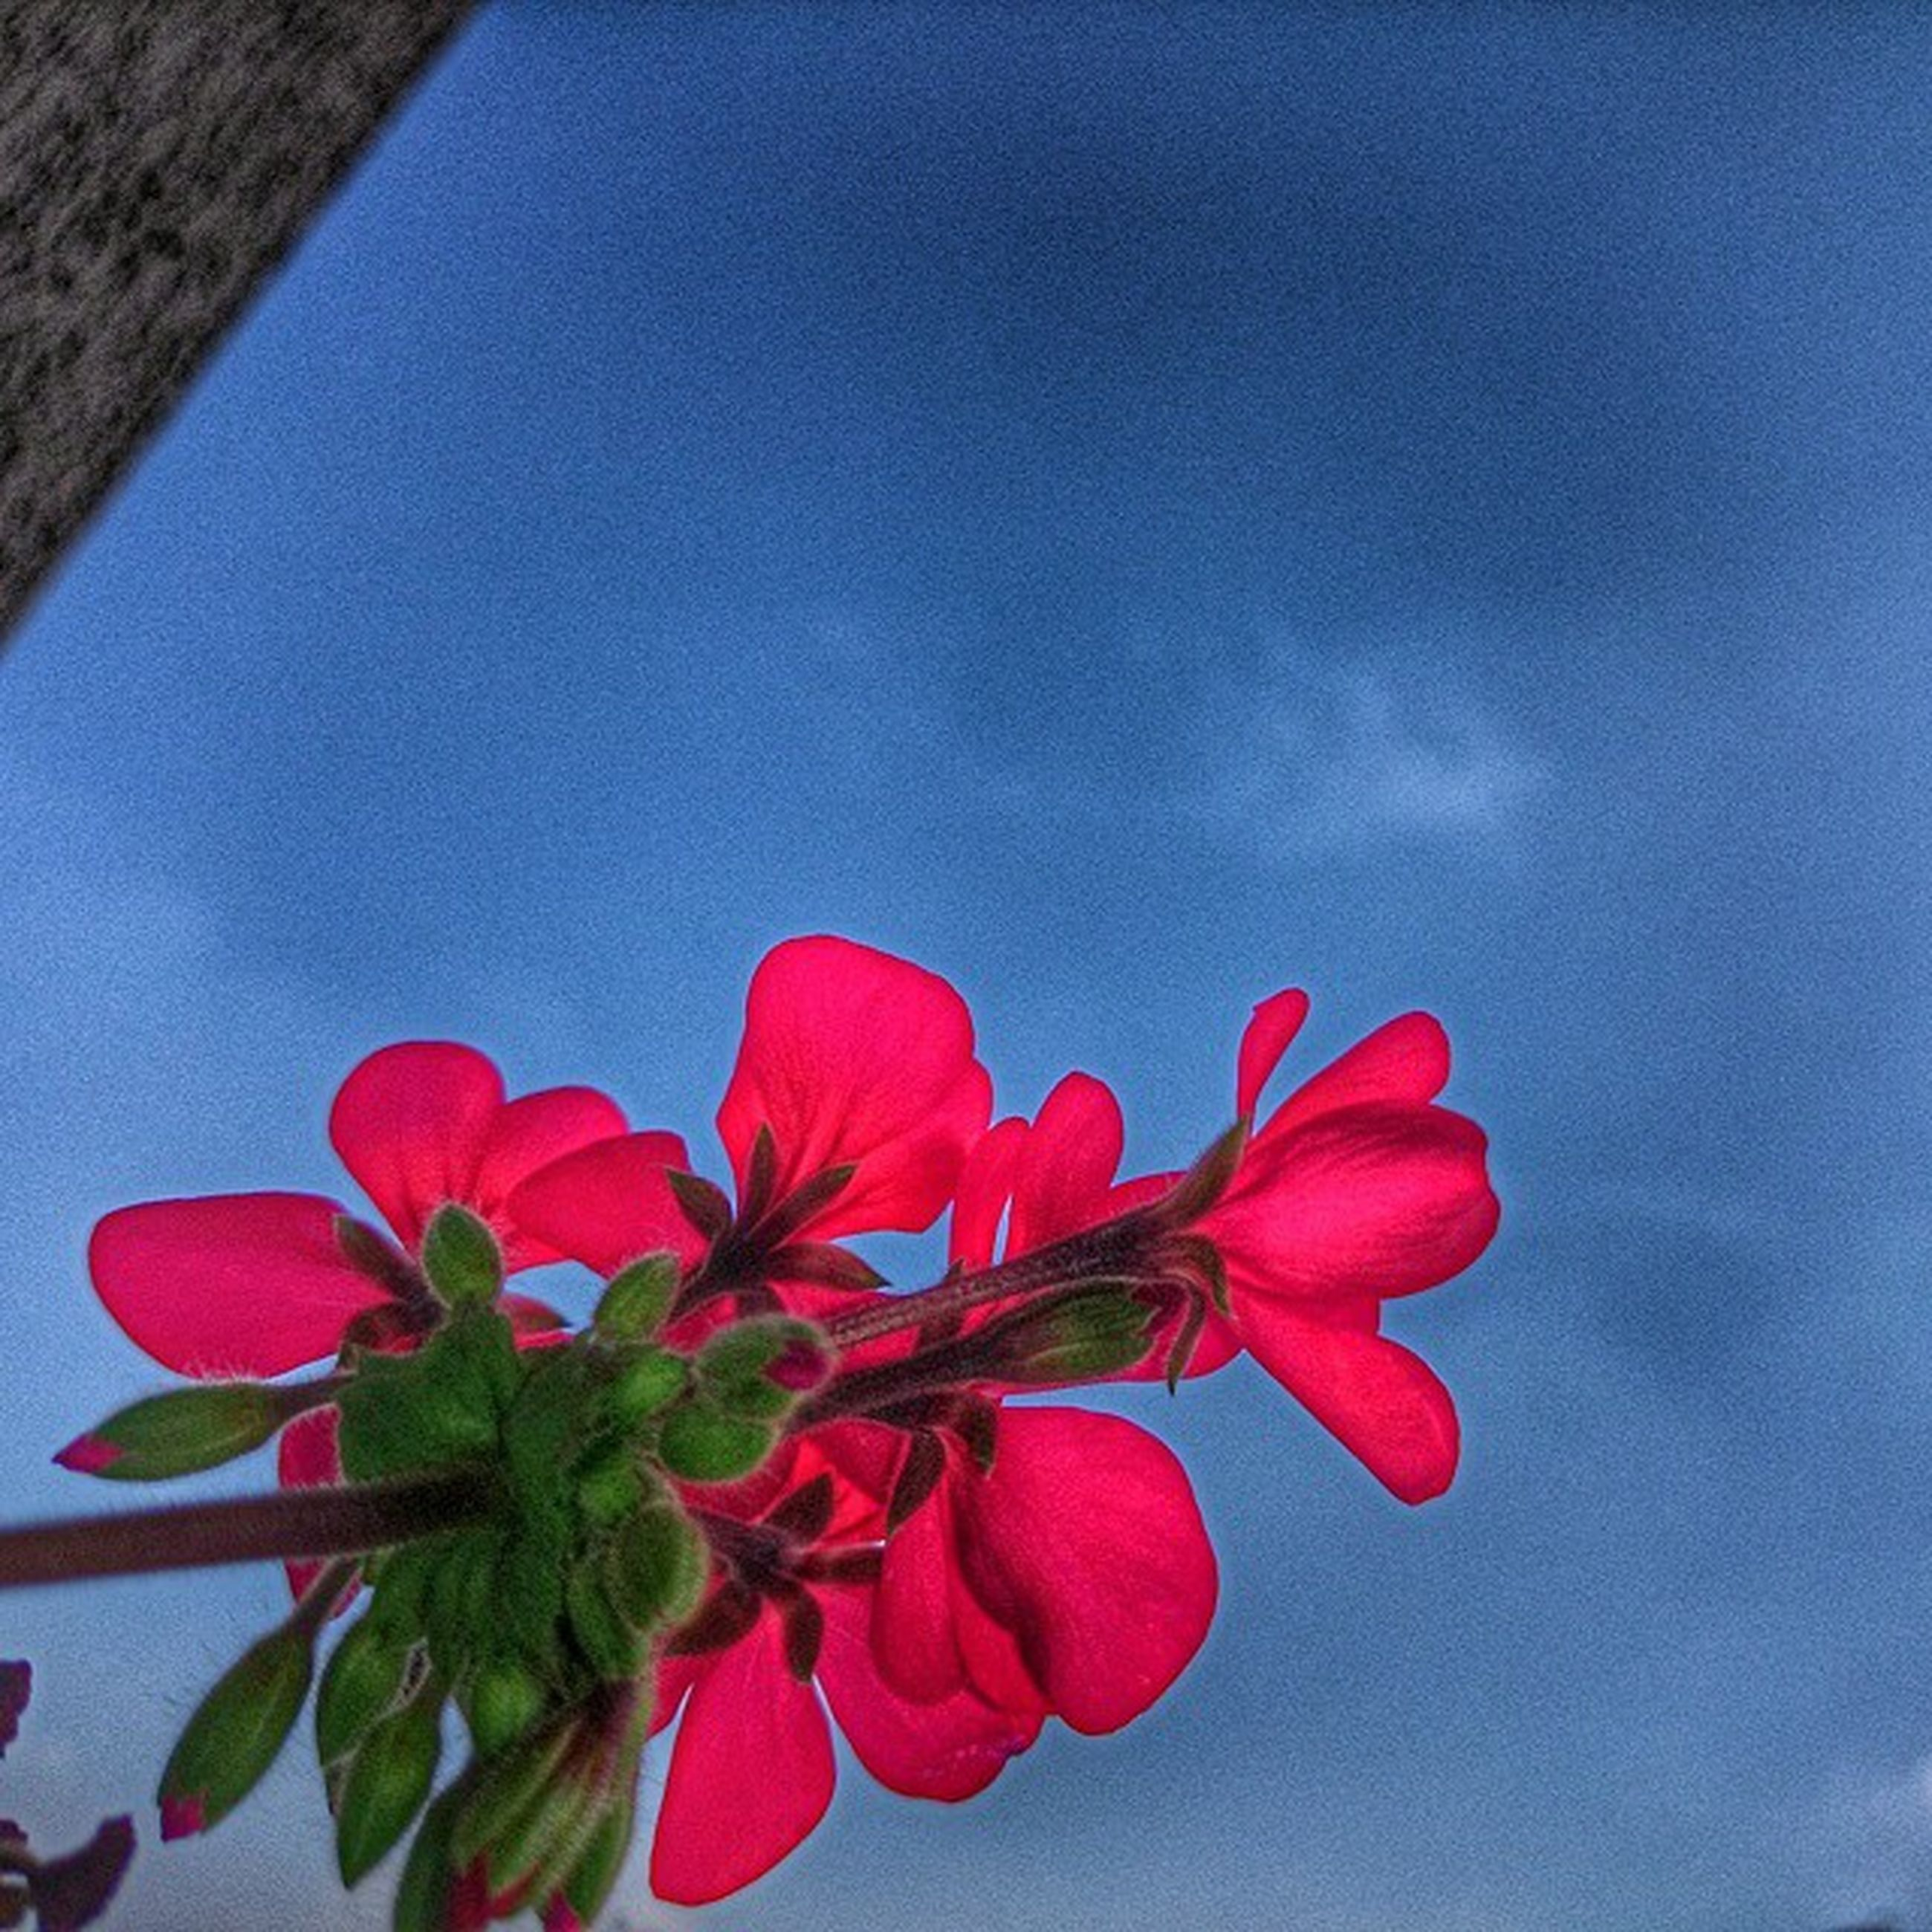 flower, freshness, petal, fragility, red, beauty in nature, growth, low angle view, flower head, sky, blue, nature, pink color, blooming, plant, close-up, stem, in bloom, no people, blossom